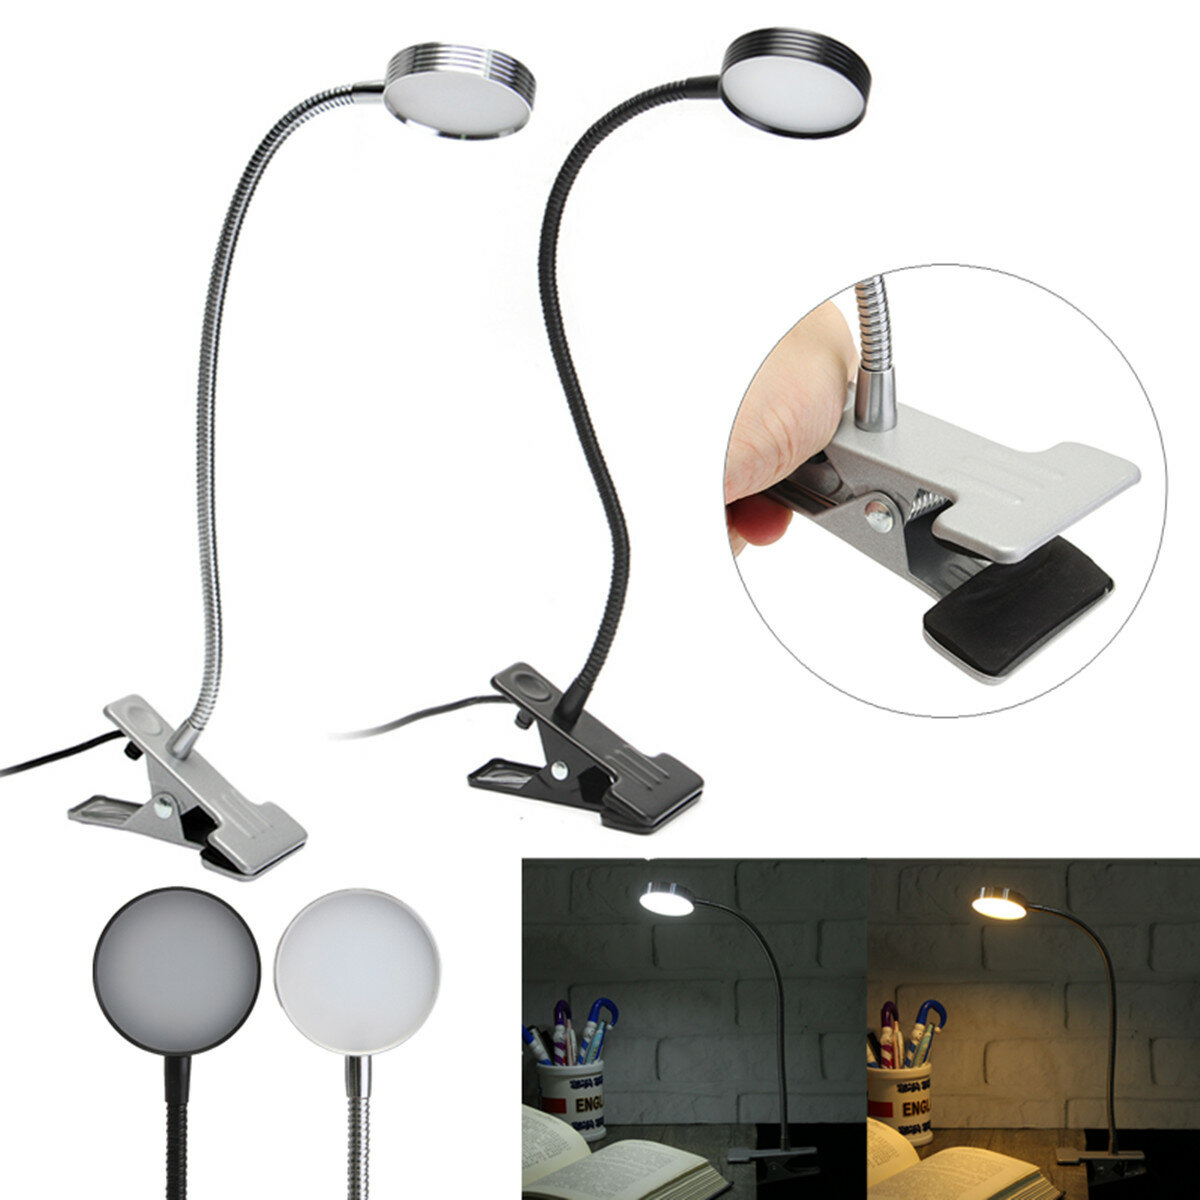 Clip On Bed Lamp 5w Flexiable Usb Clip On Led Table Desktop Light Bedside Laptop Bed Reading Lamp